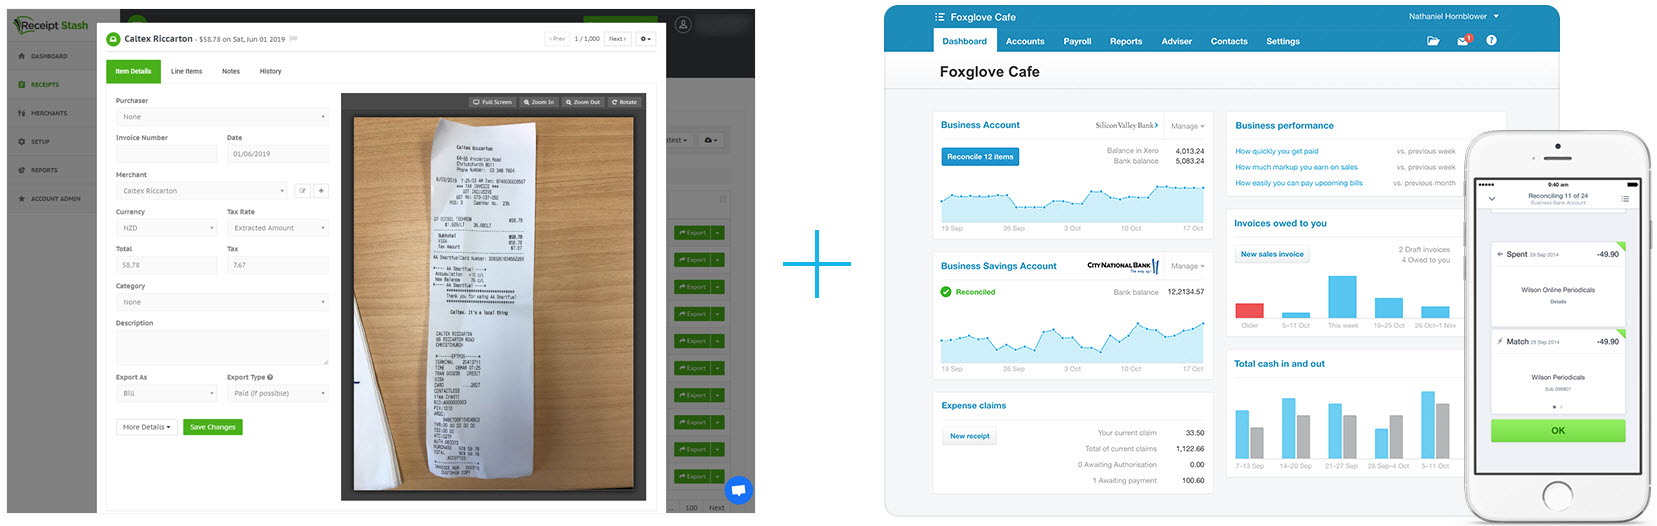 Automatically extract accounting data with the Receipt Stash mobile app or Dropbox, and send it your Xero account.